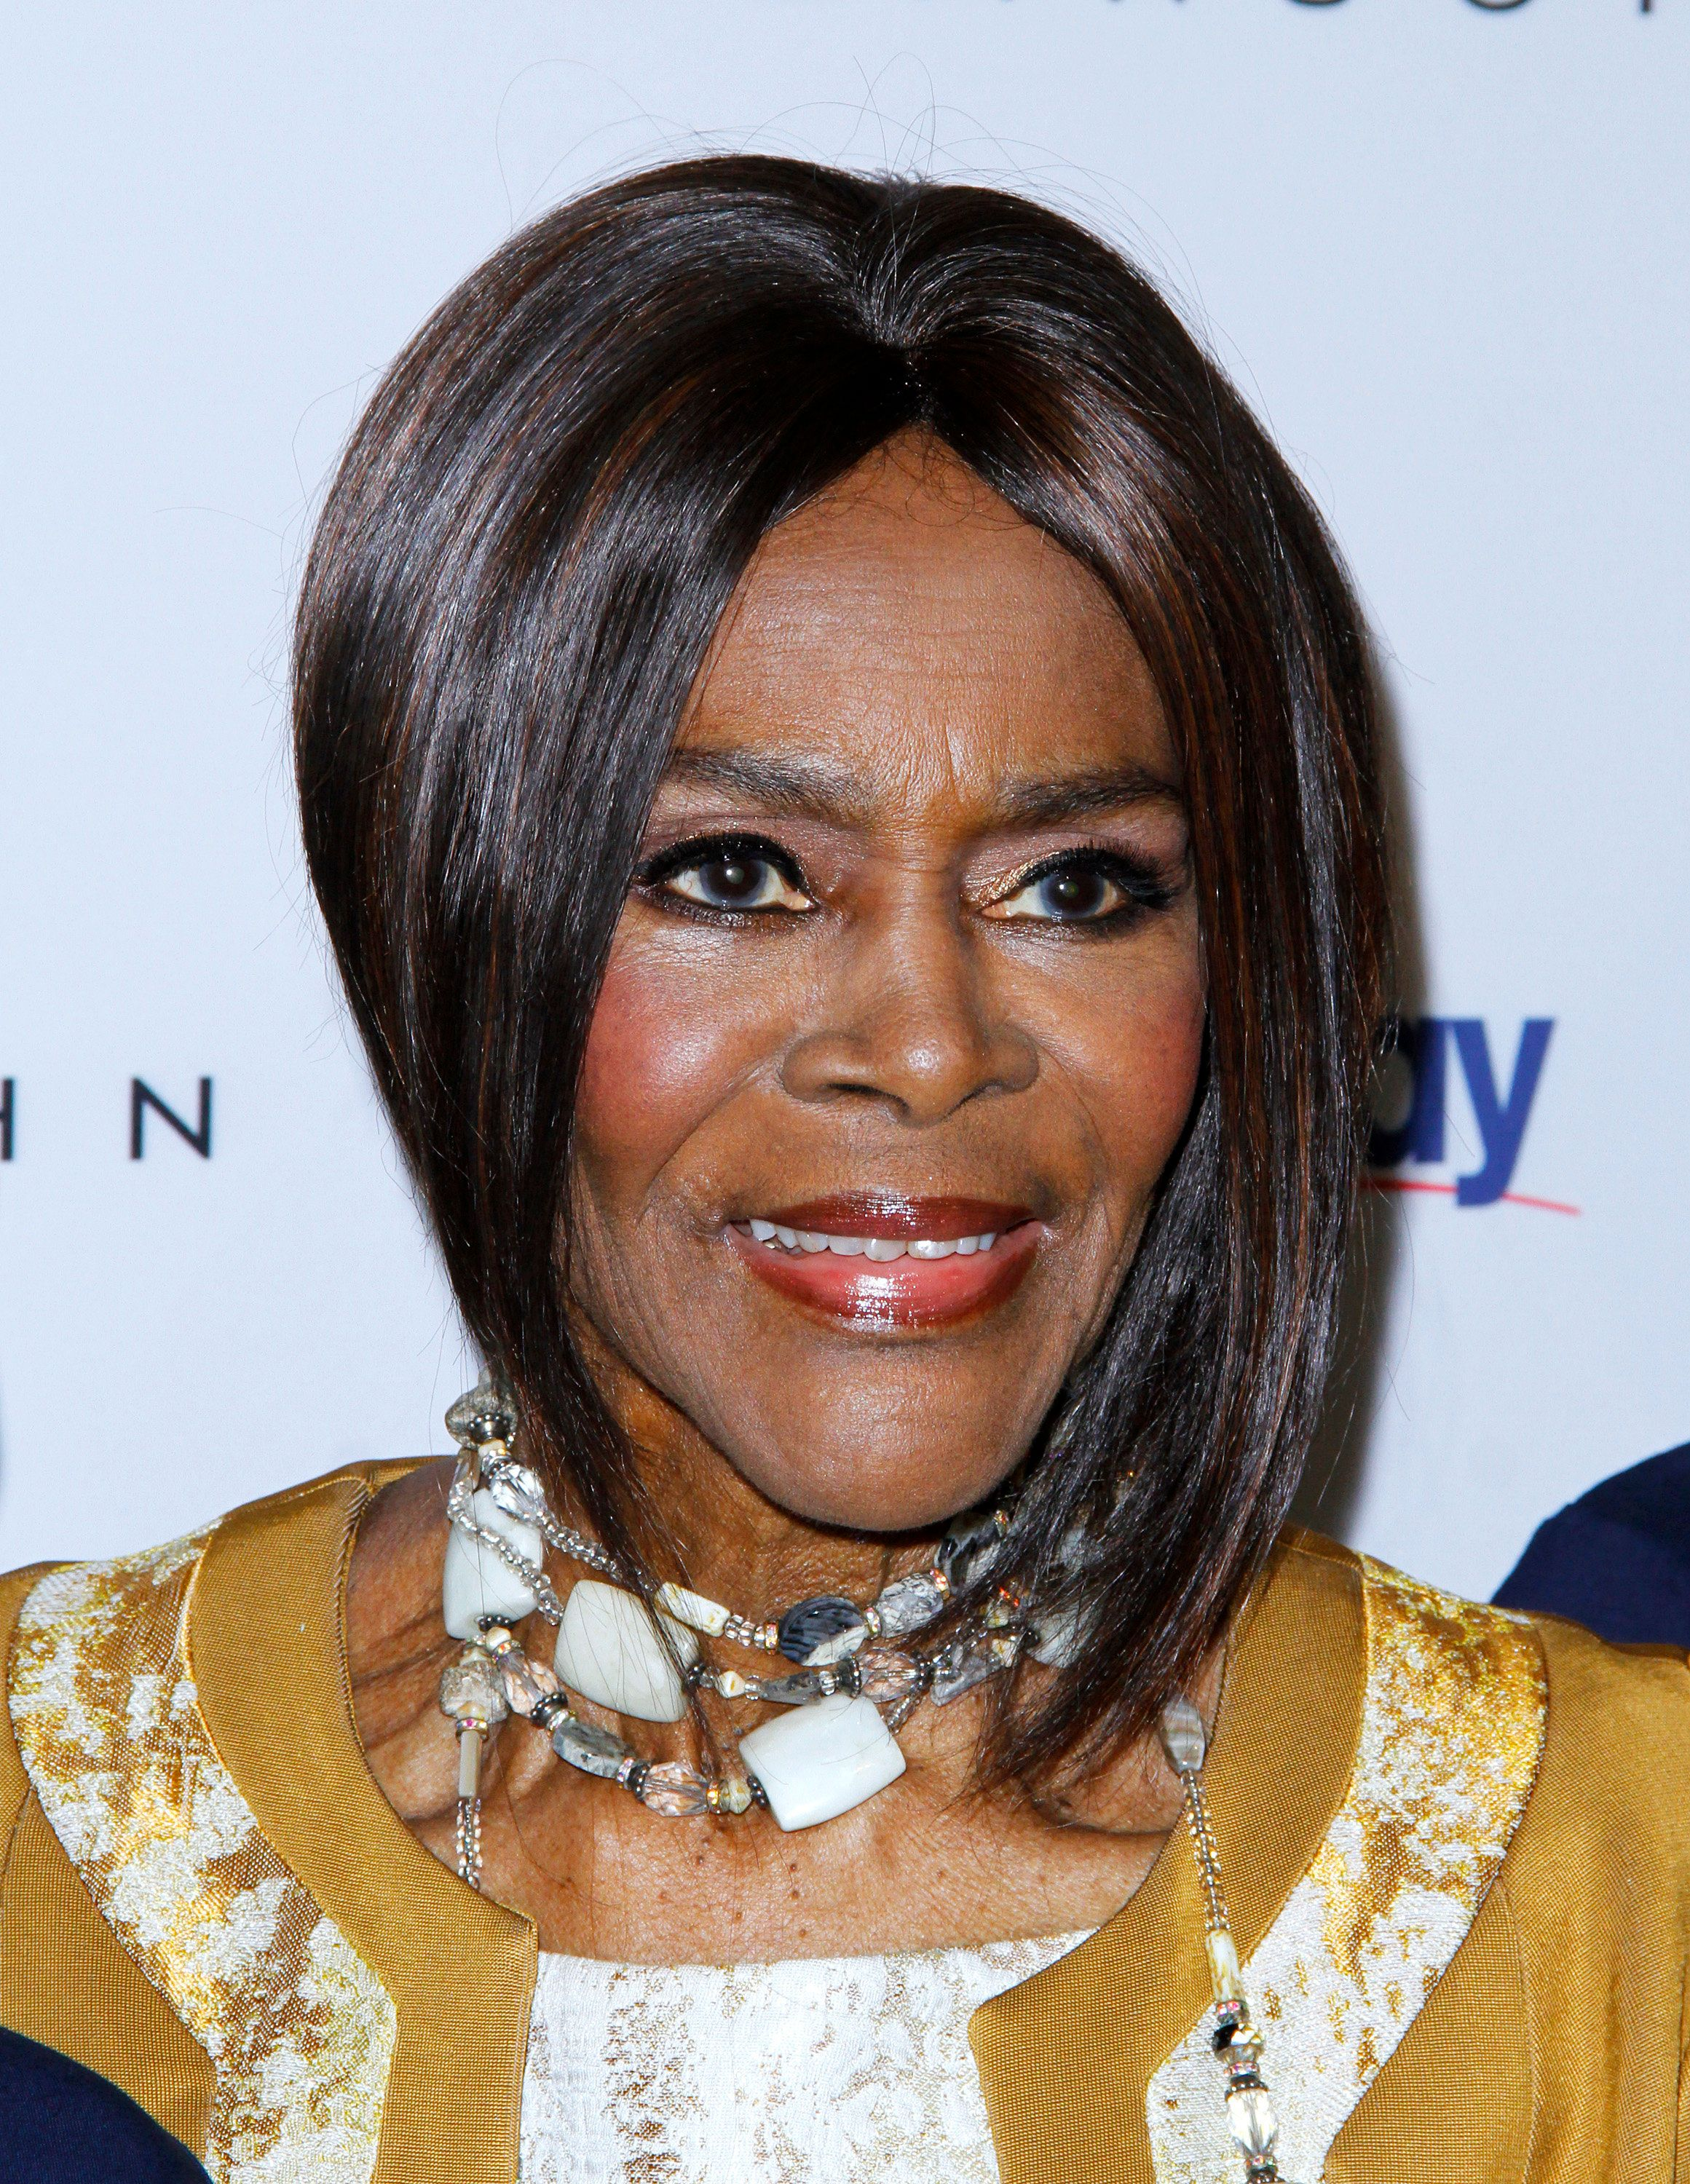 Cicely Tyson in New York City in 2016. She was nominated for an Oscar in 1973 but did not win.